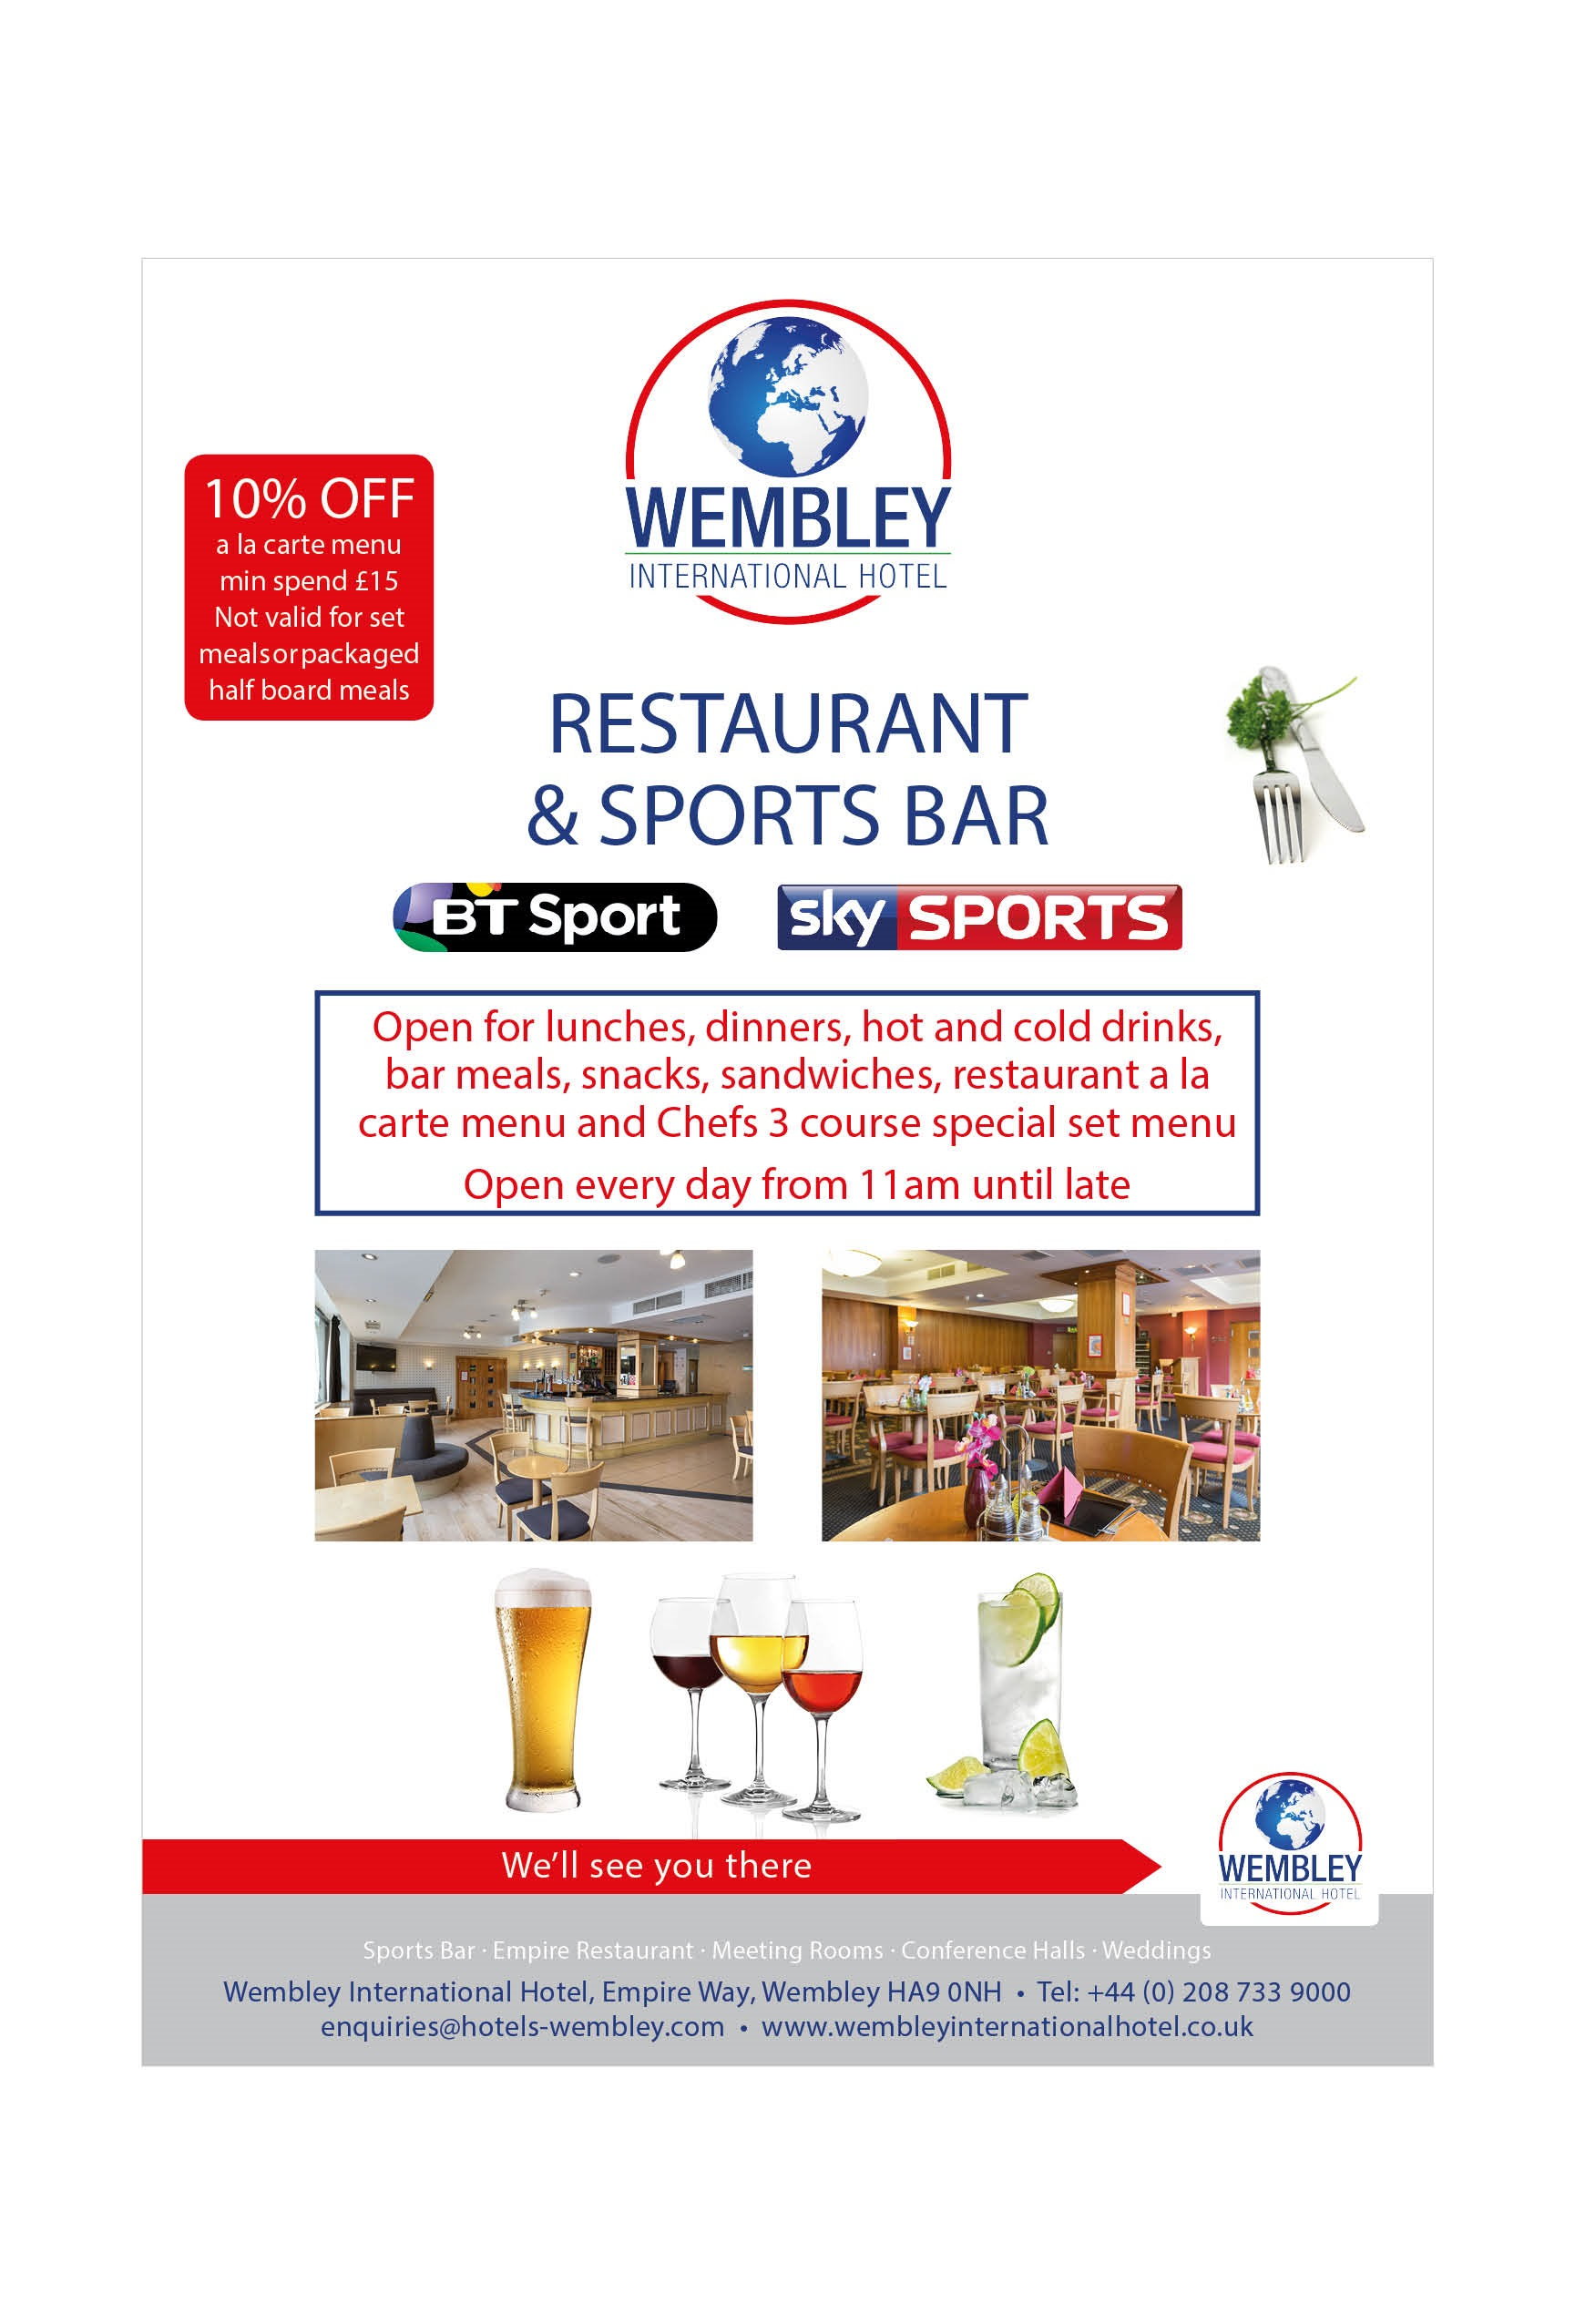 Empire Restaurant Wembley 10% discount off a la carte menu